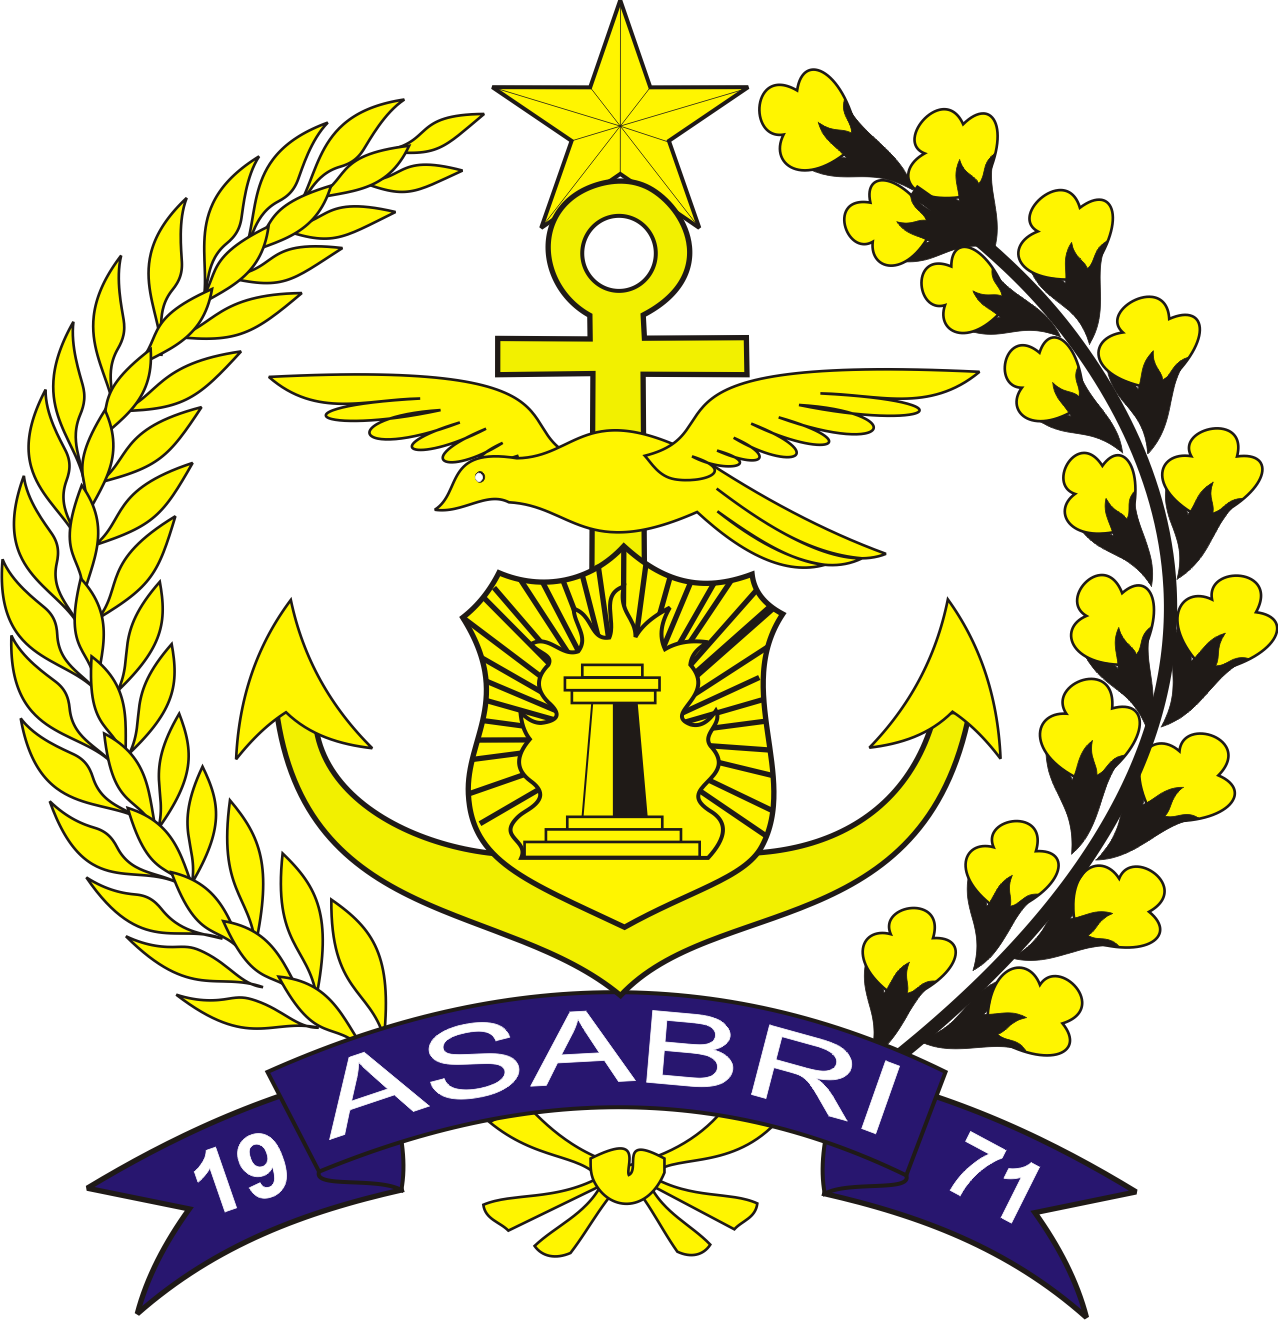 Image Result For Asabri